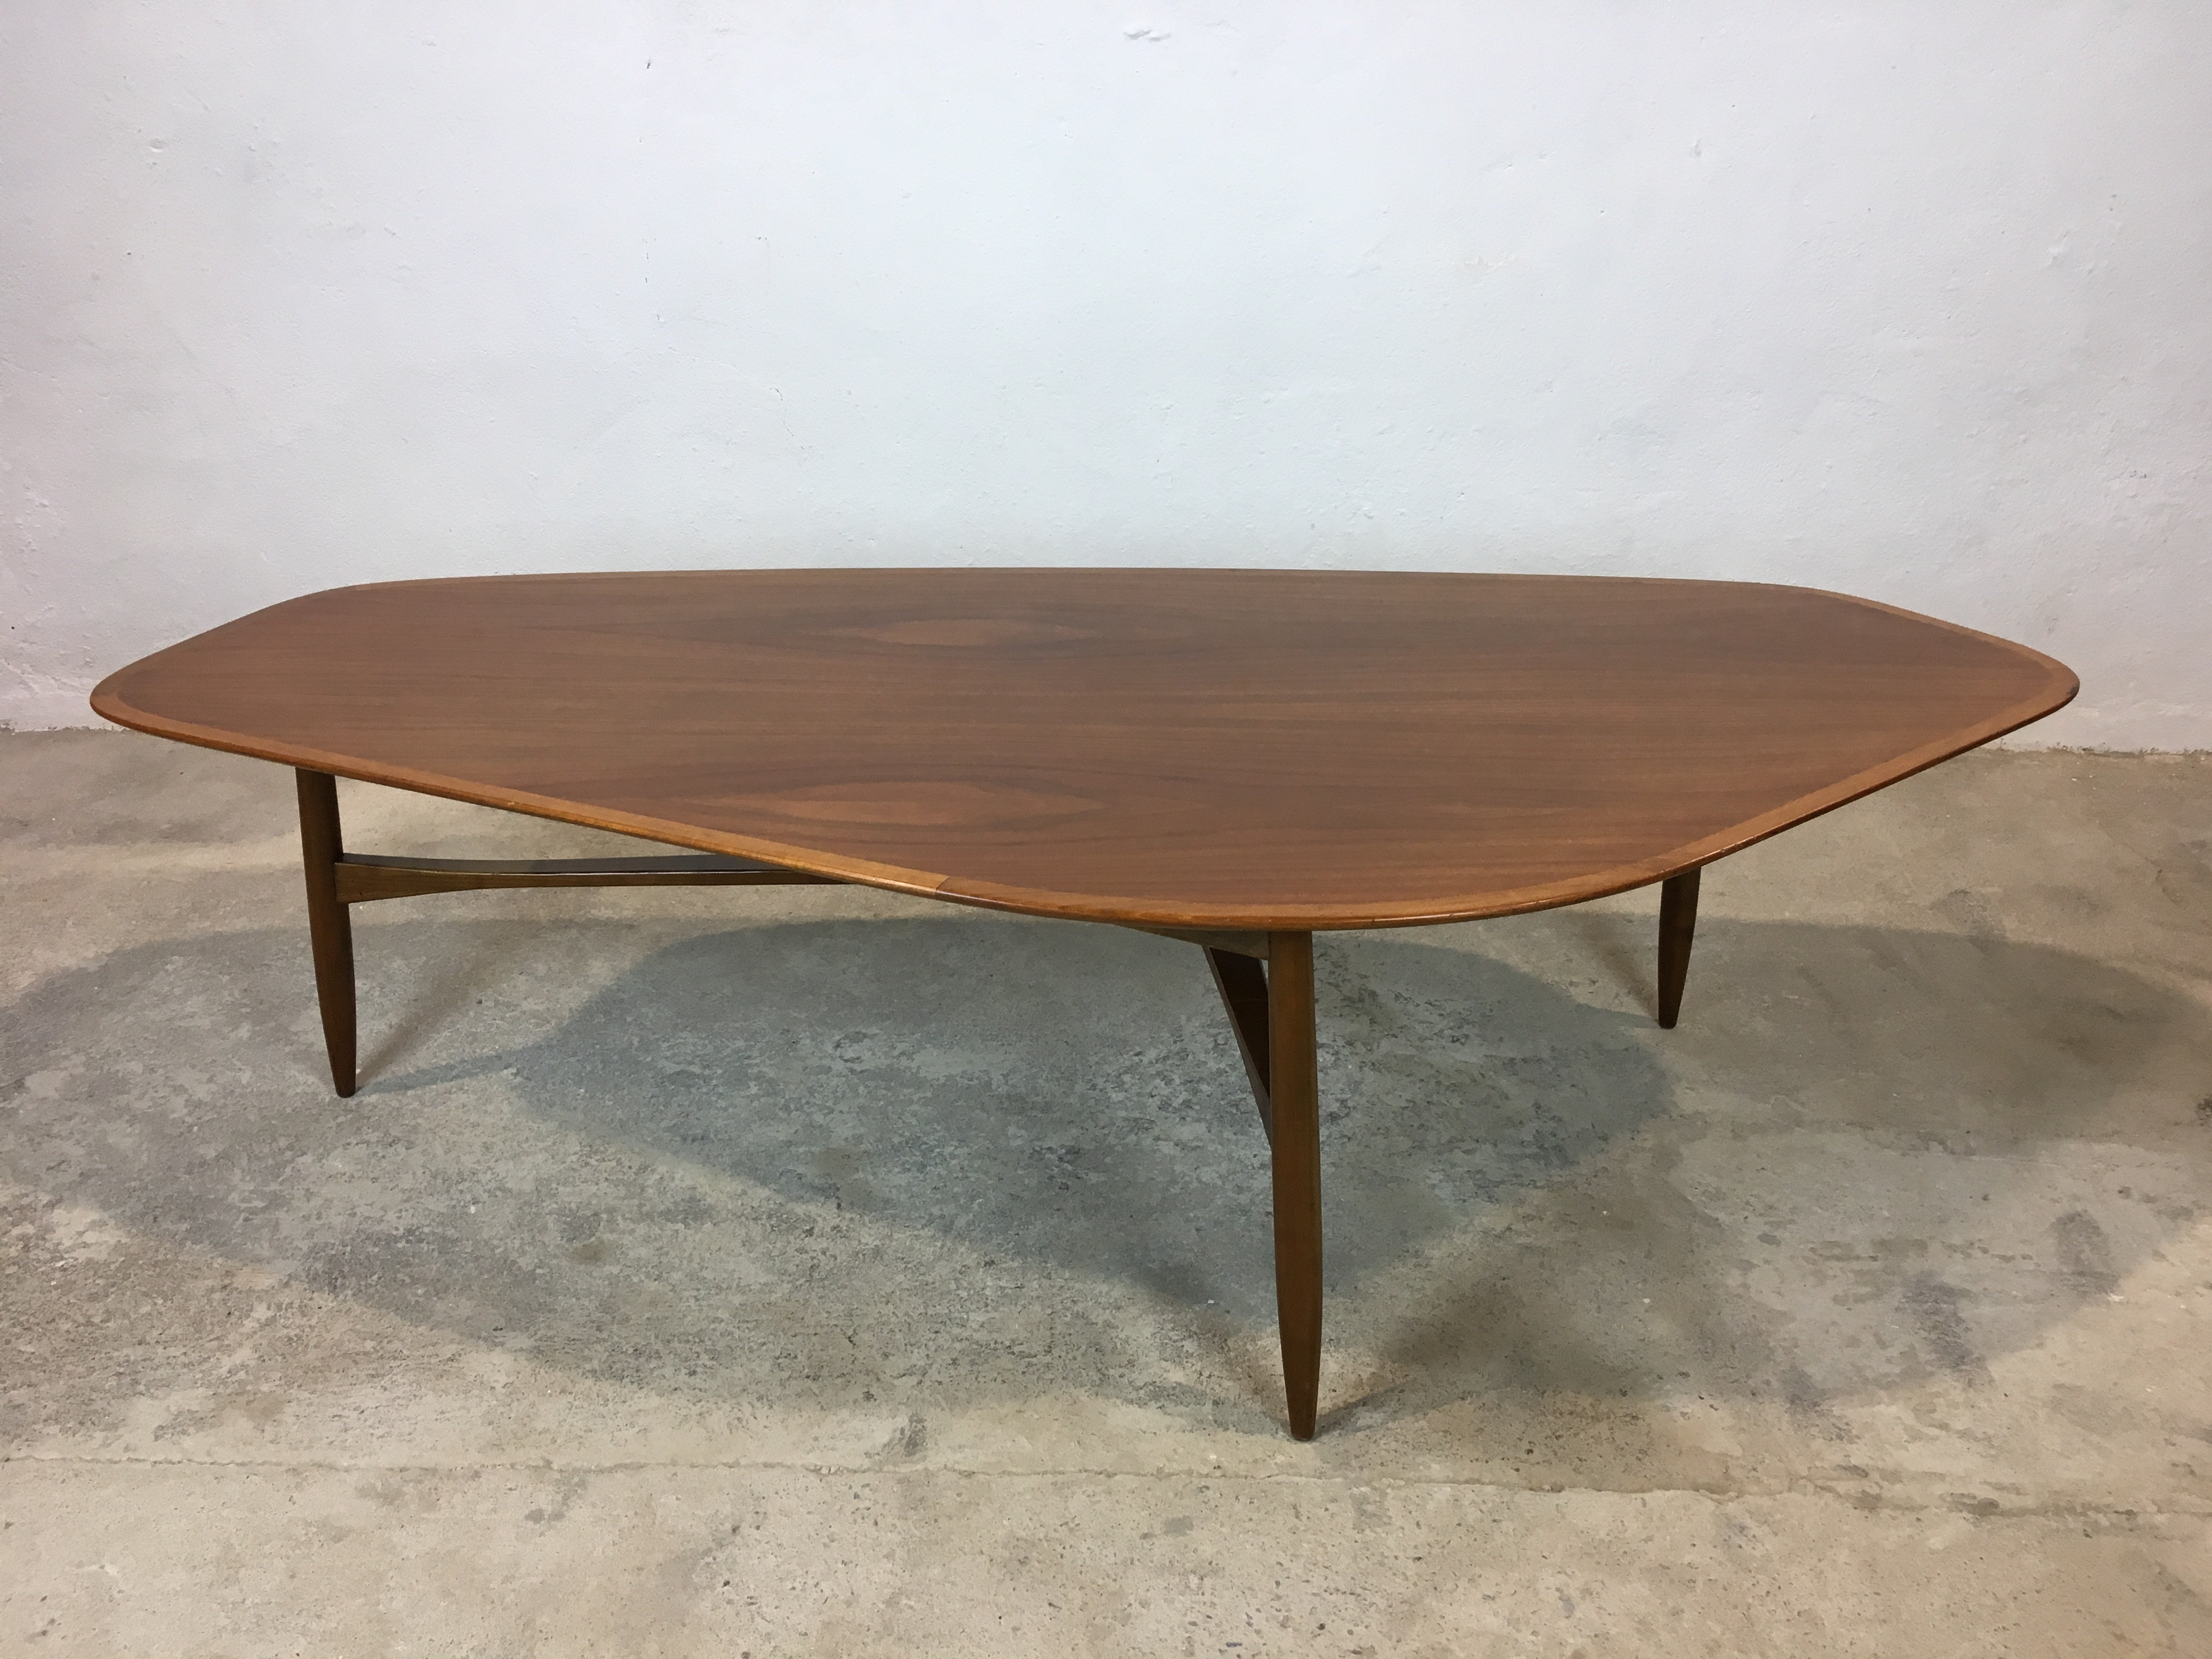 Table basse scandinave forme libre ann e 60 coffee table for 60s style coffee table